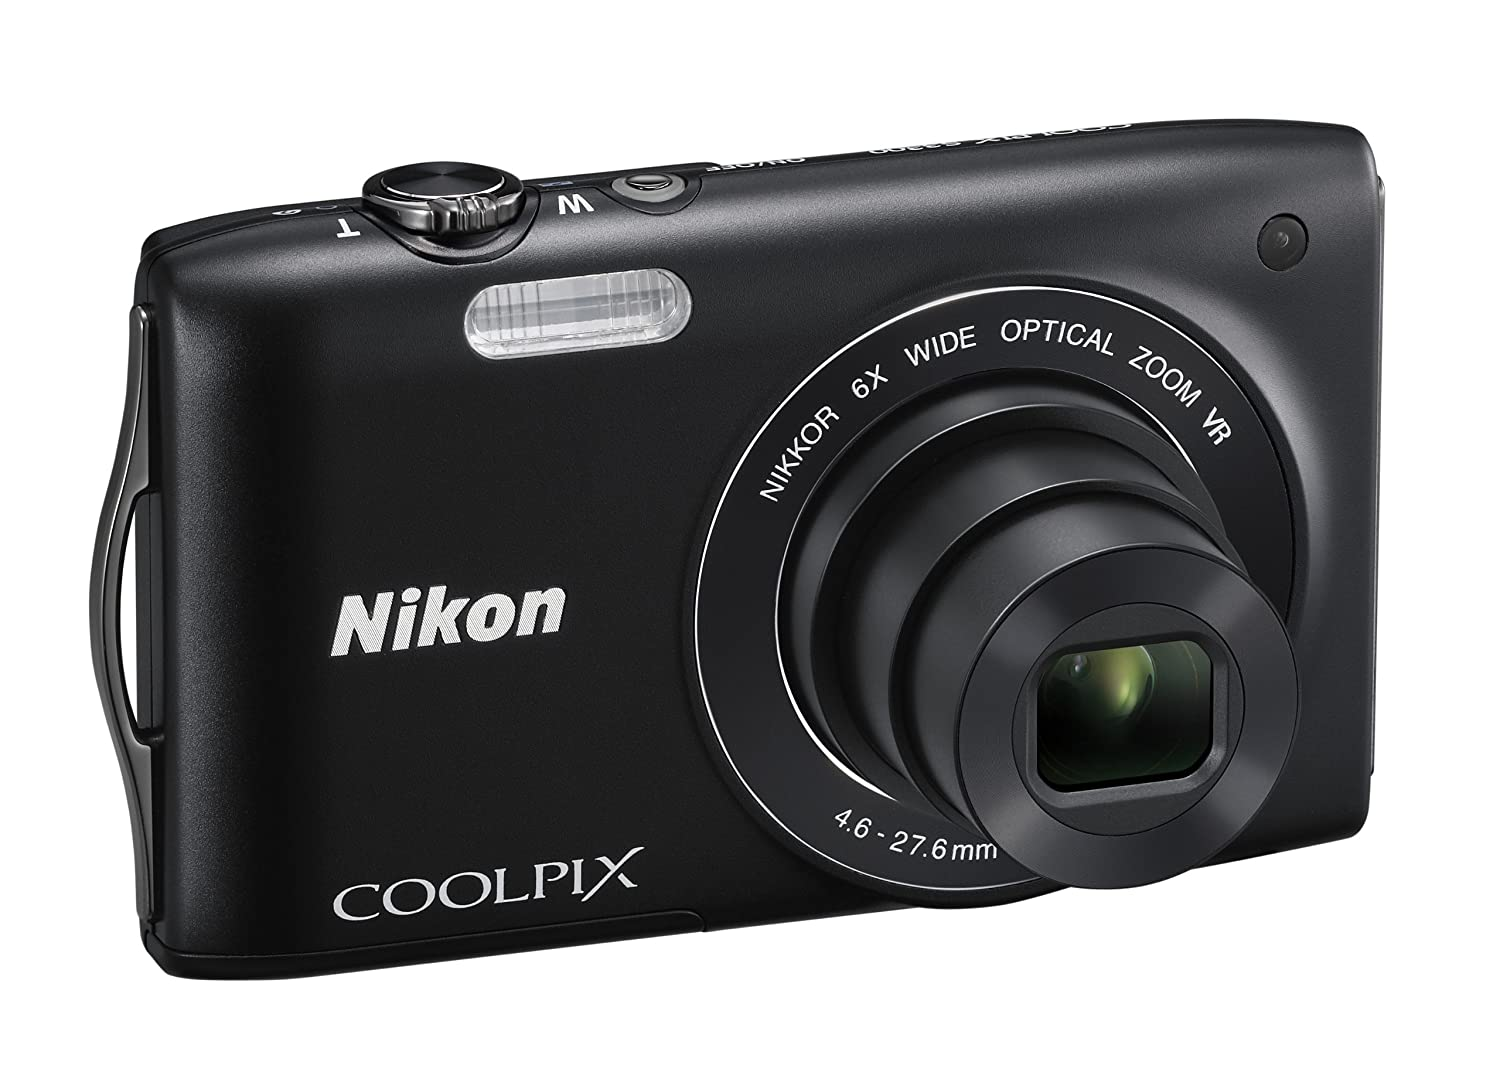 Amazon.com : Nikon COOLPIX S3300 16 MP Digital Camera with 6x Zoom NIKKOR  Glass Lens and 2.7-inch LCD (Black) : Point And Shoot Digital Cameras :  Camera & ...